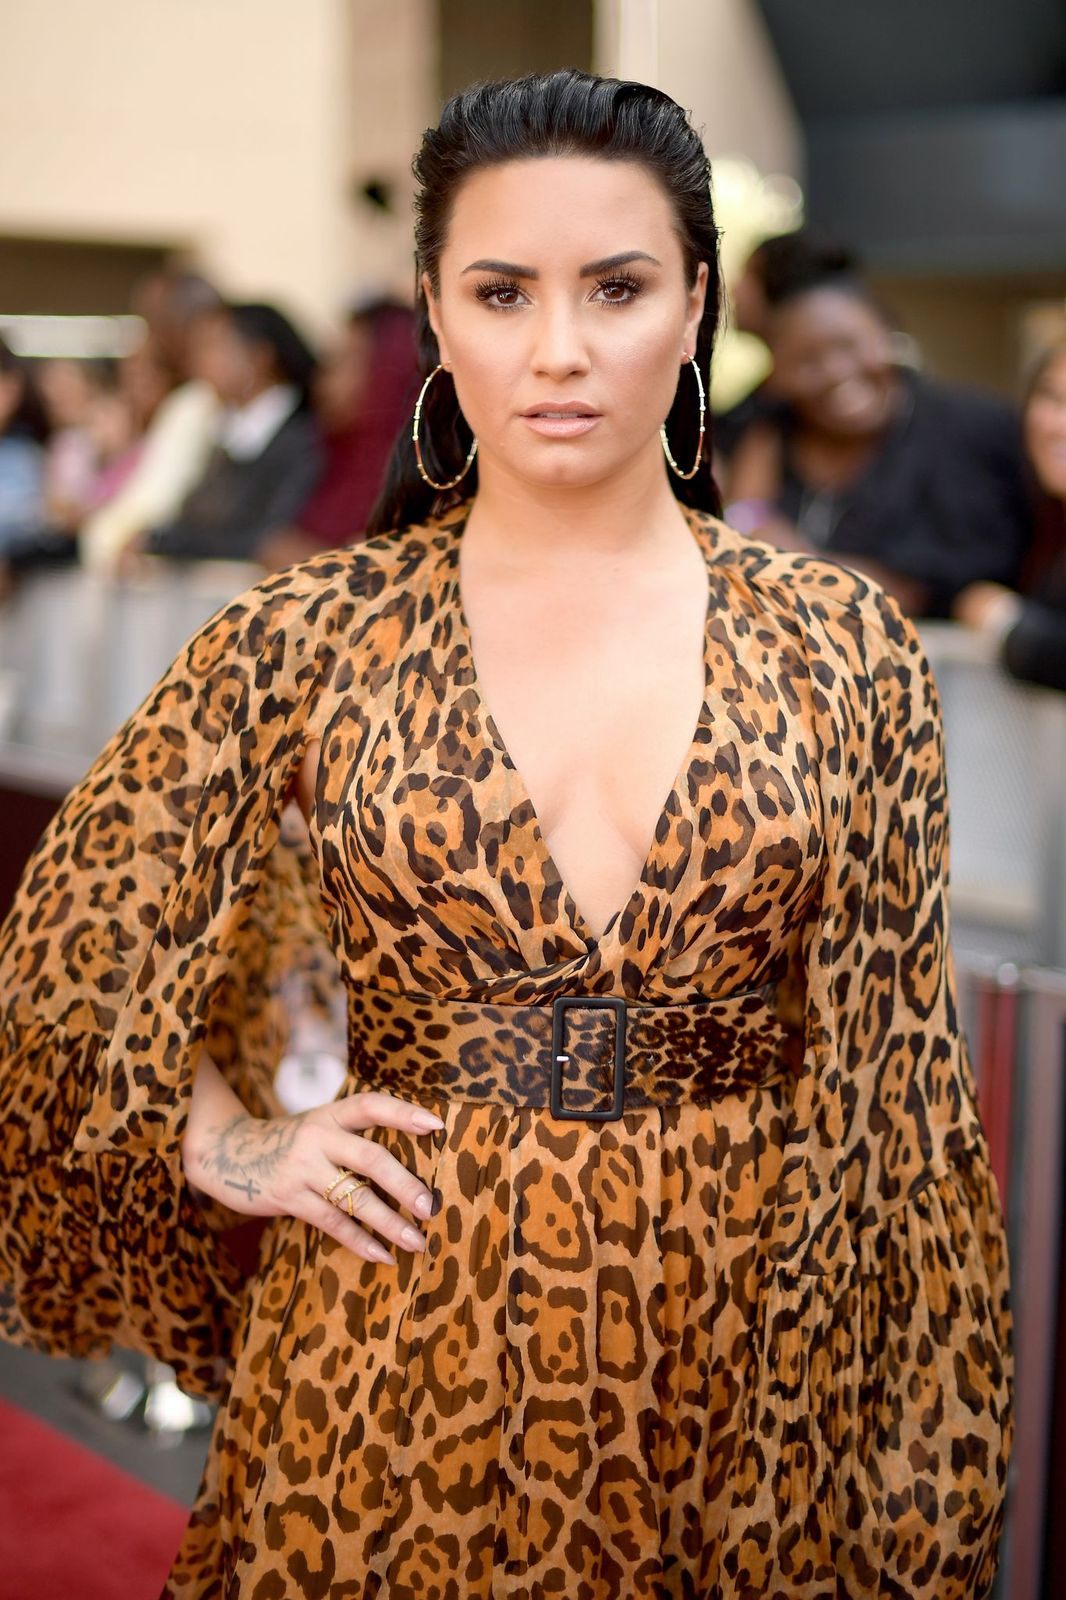 Demi Lovato at the Billboard Music Awards on May 20, 2018, in Las Vegas, Nevada | Photo: Matt Winkelmeyer/Getty Images